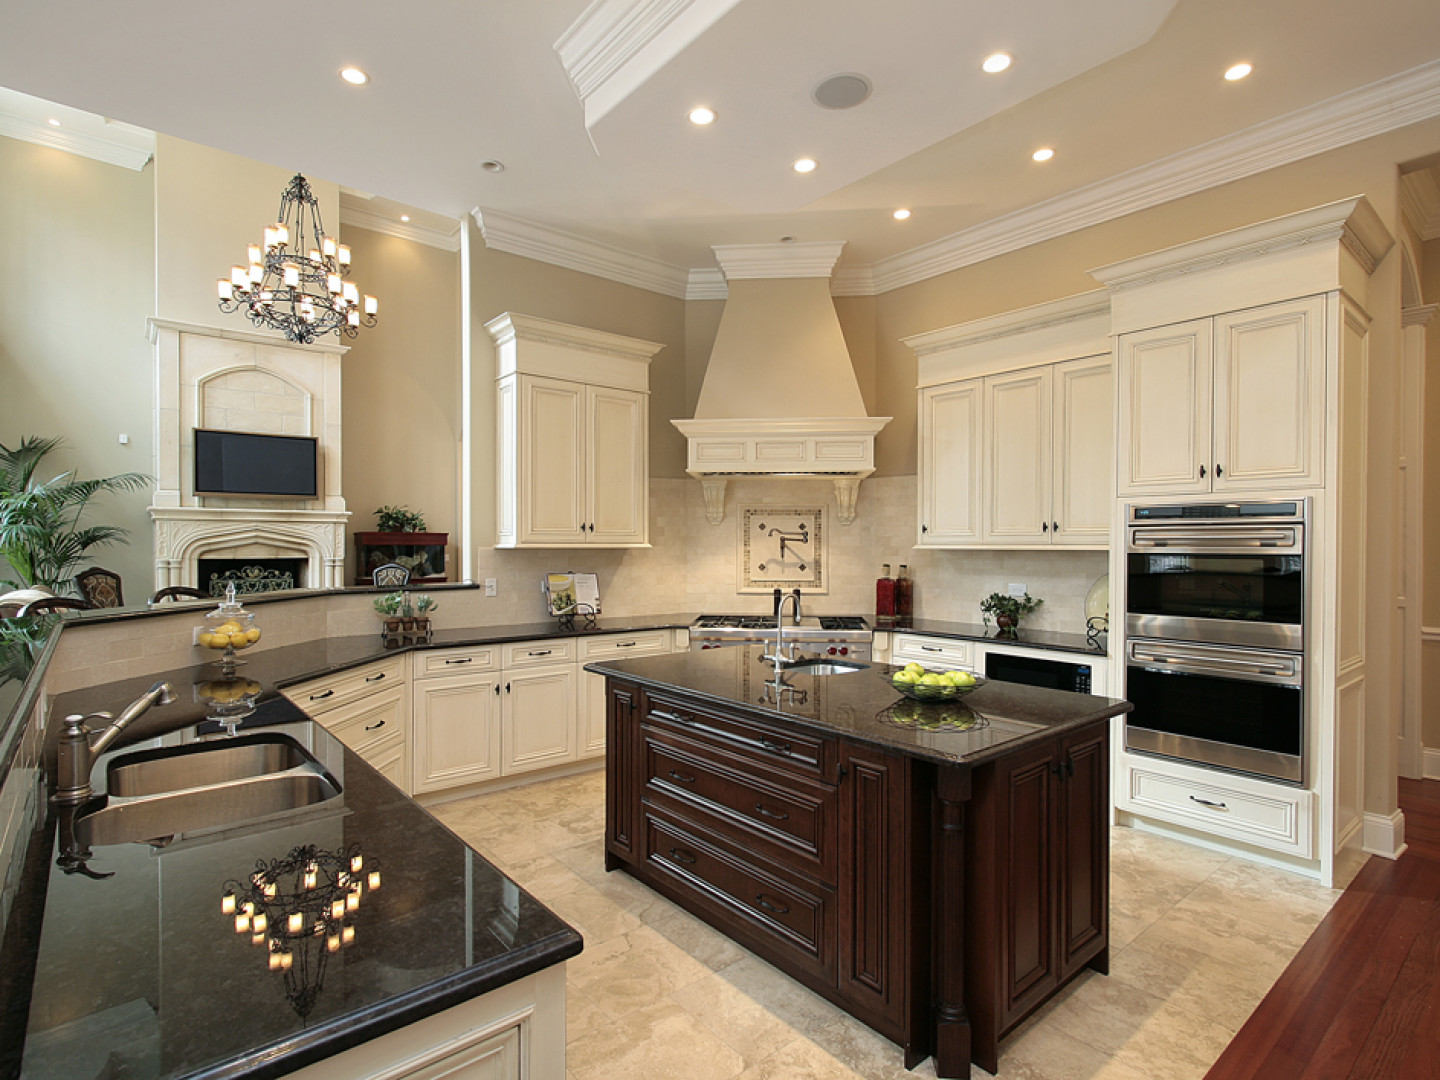 Request kitchen remodeling from our experienced team